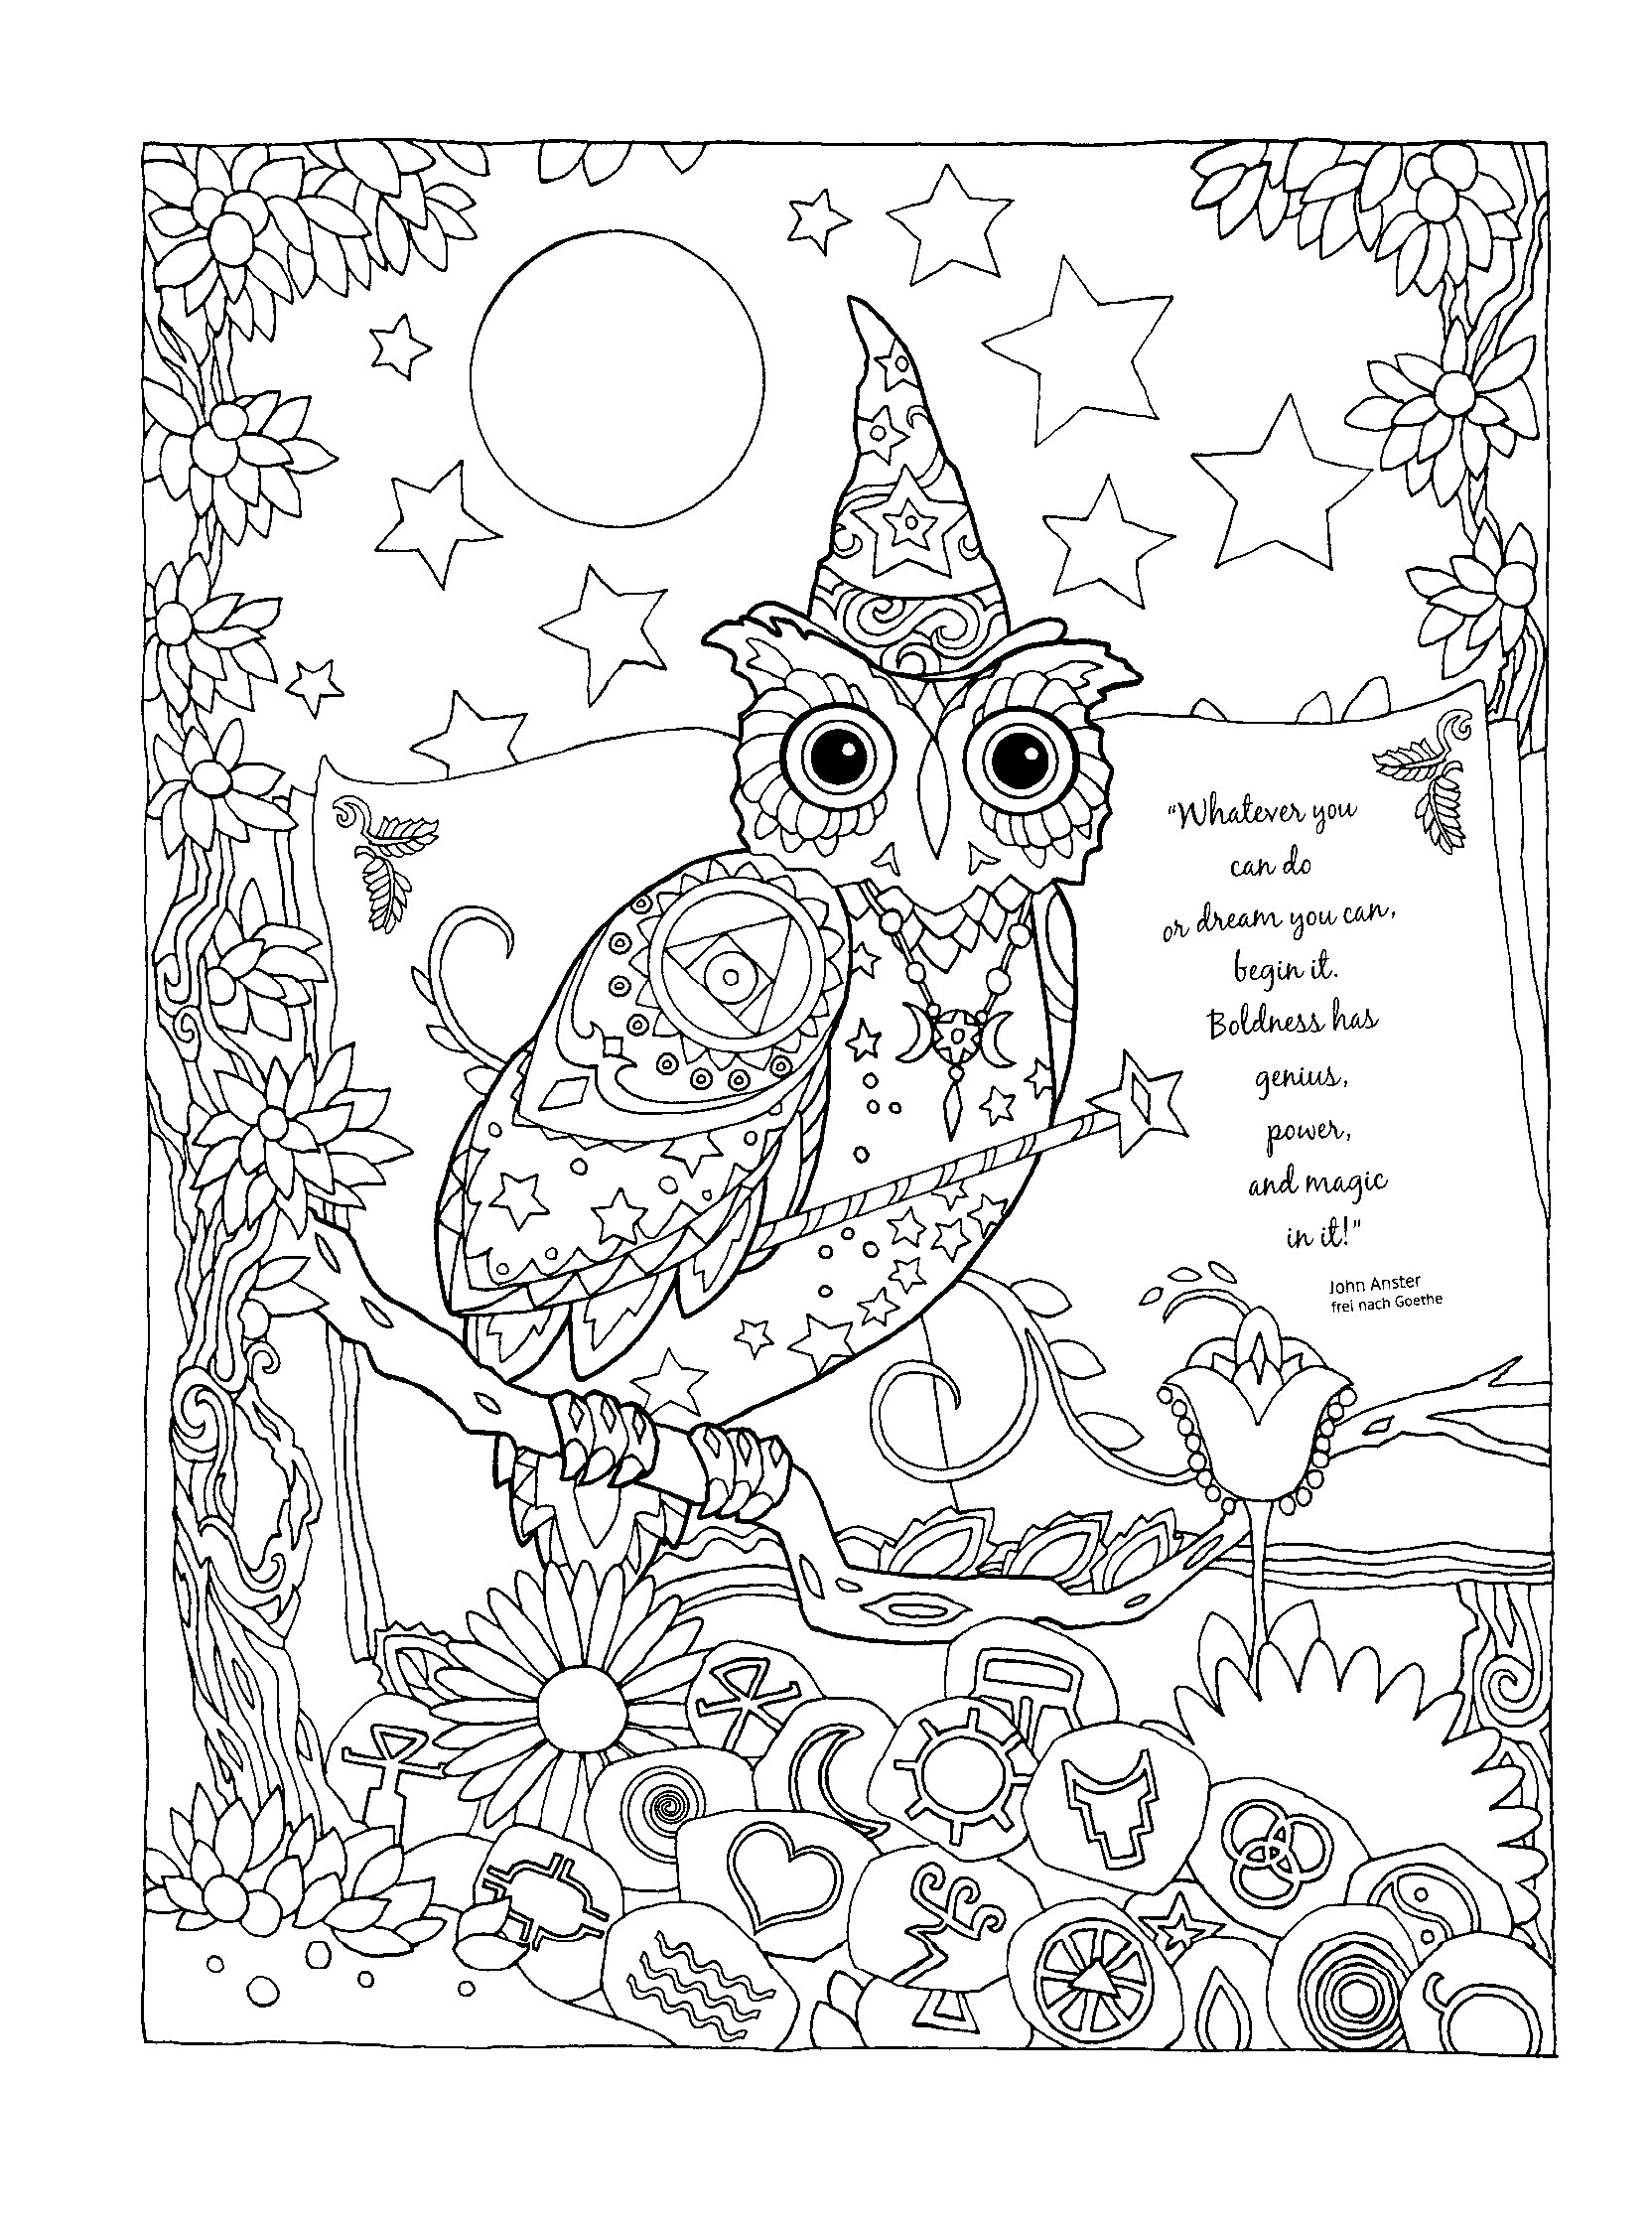 Mushroom Coloring Pages  Gallery 9f - Free For Children